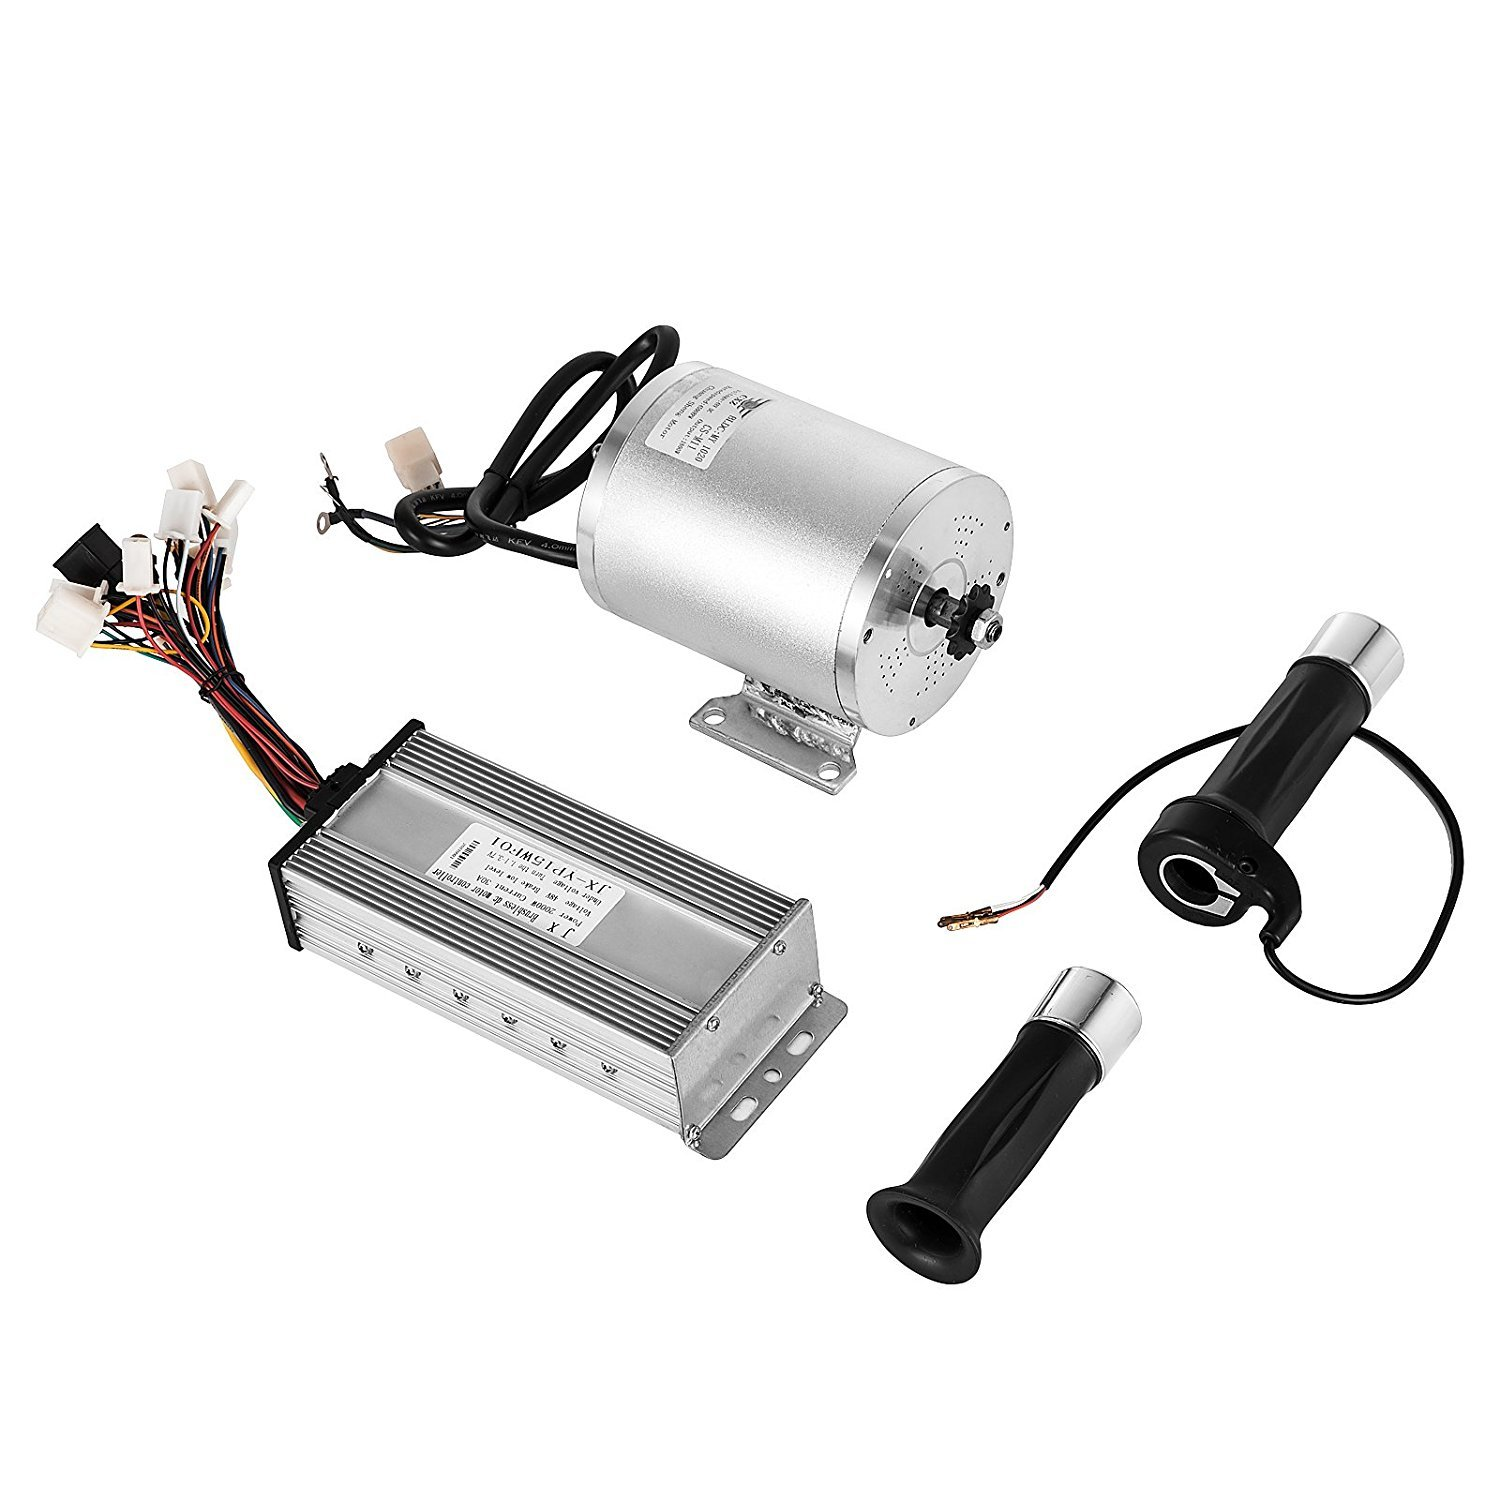 BestEquip 1800W 48V High Speed Electric Brushless DC Motor with 32A Brushless Speed Controller and Throttle Grip Kit for Go Kart Moped Mini Bikes (with 32A Speed Controller and Throttle Grip Kit) by BestEquip